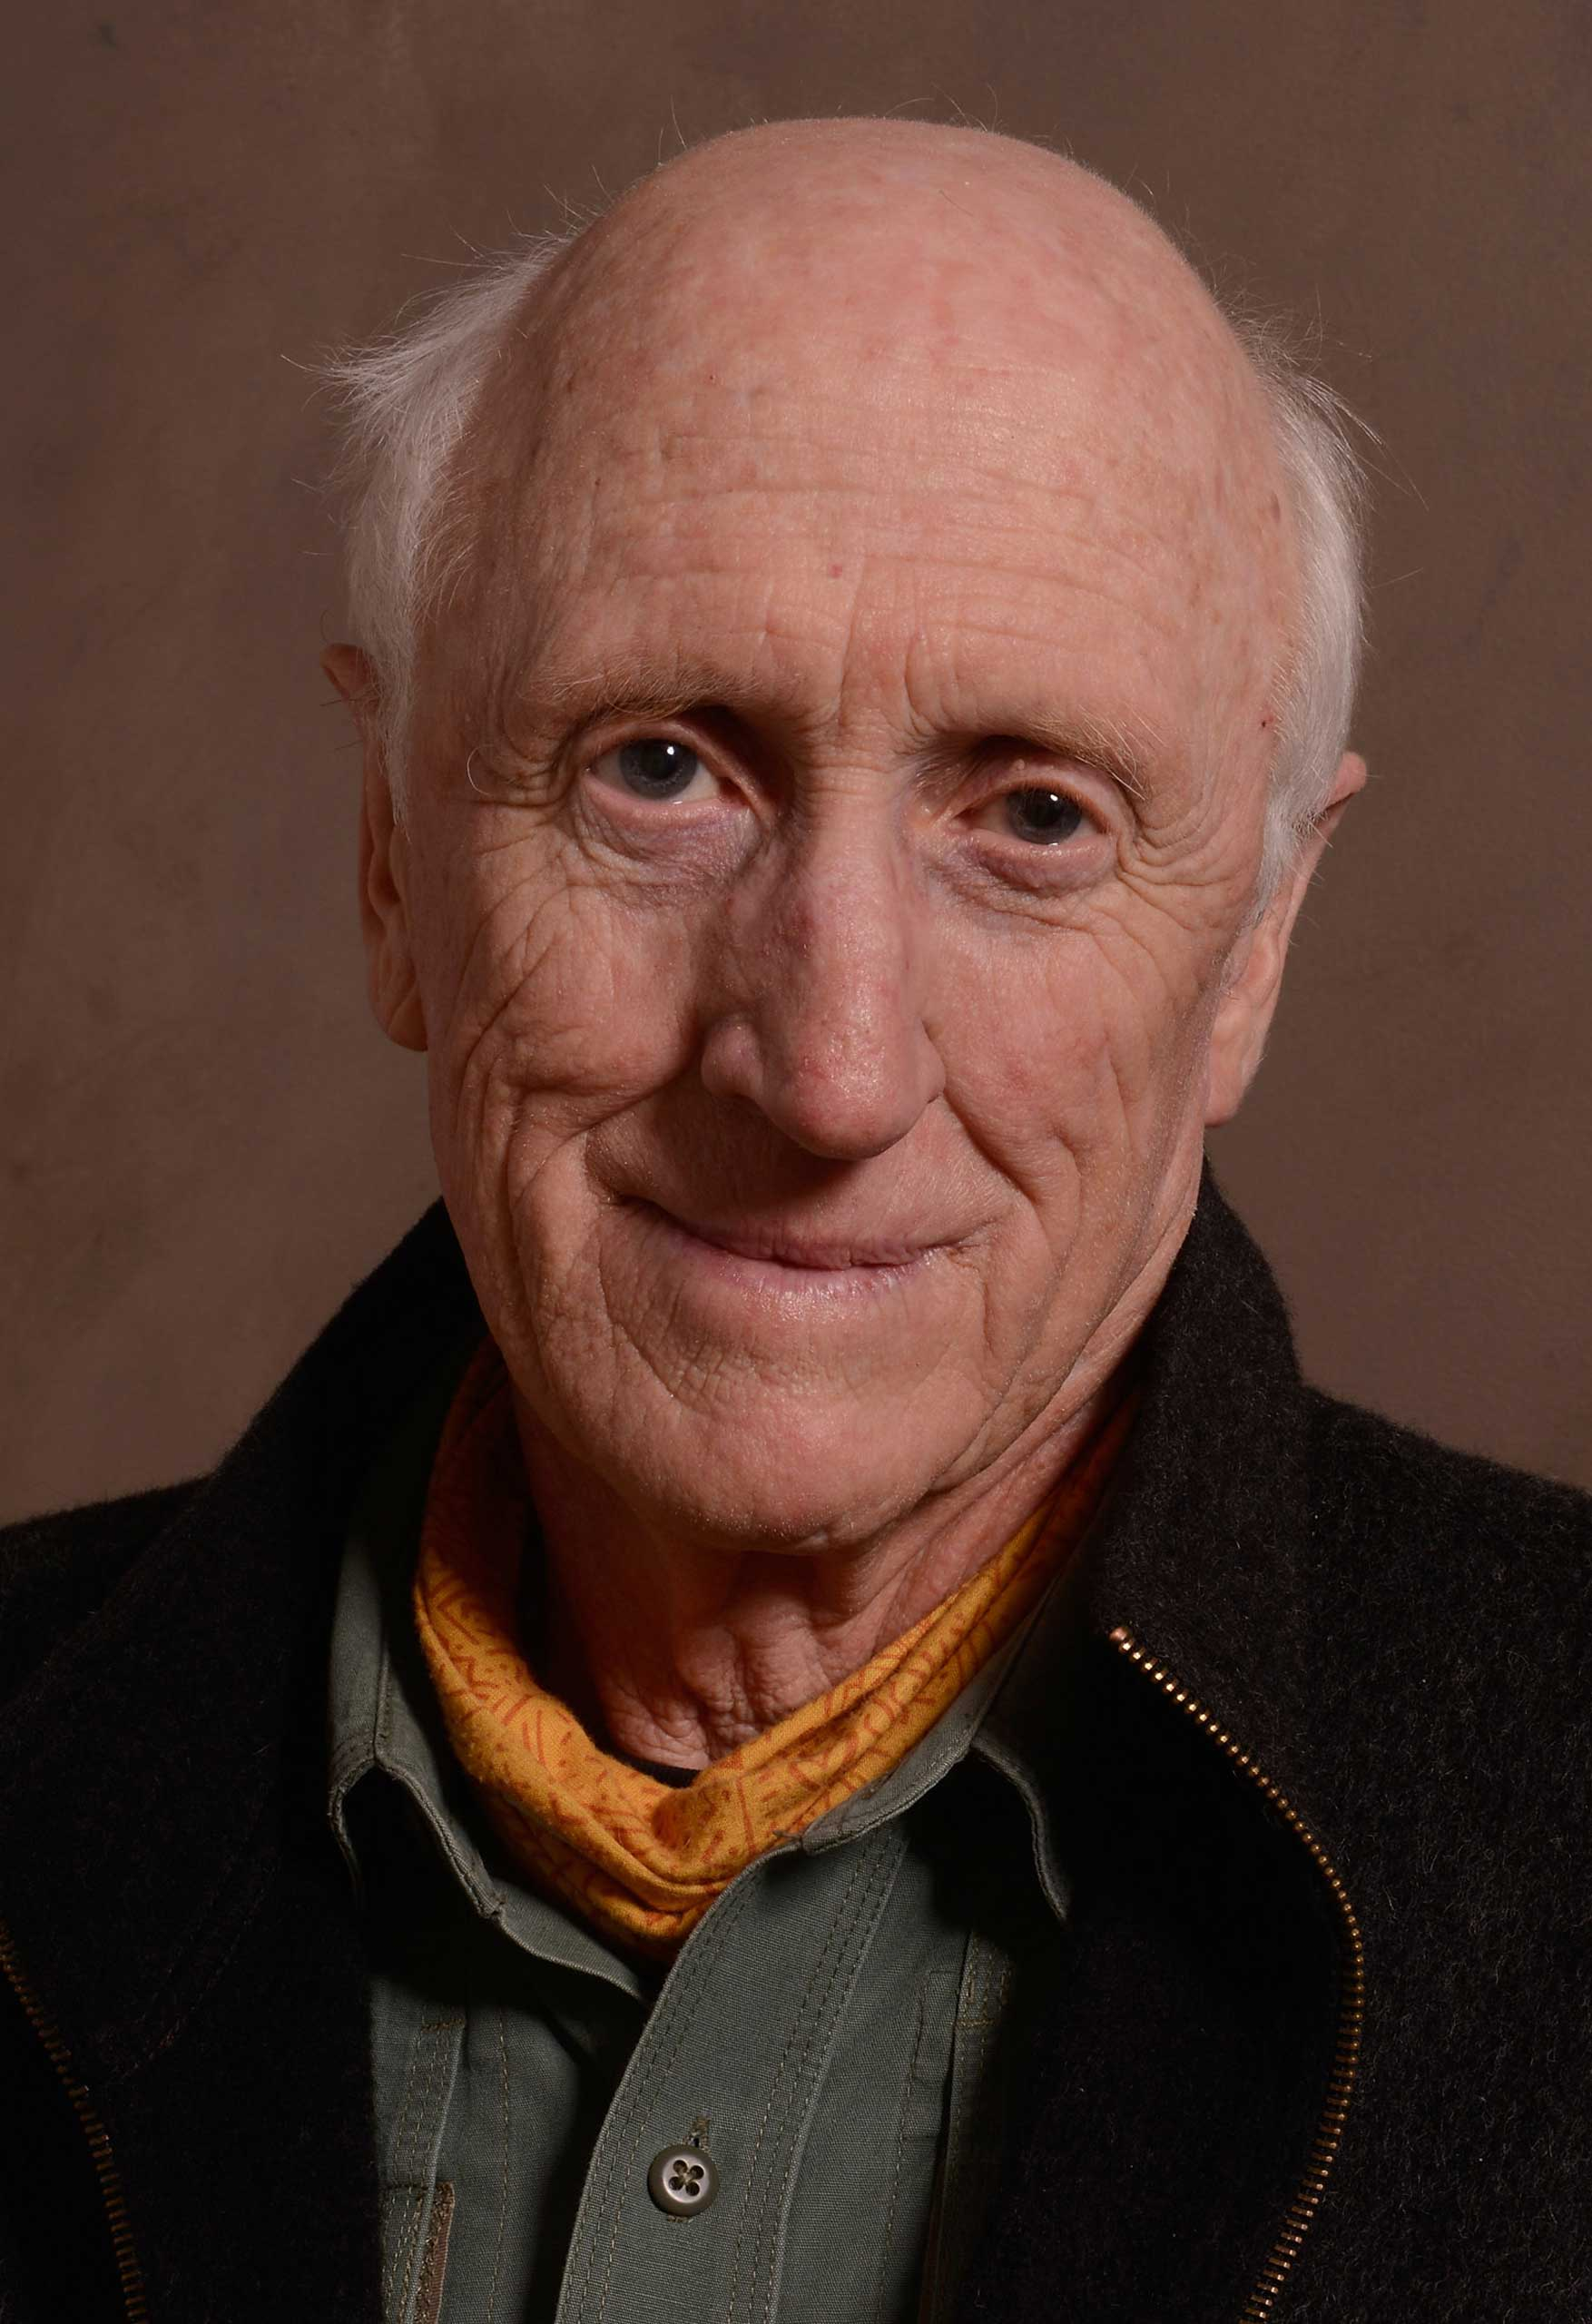 Stewart Brand poses for a portrait during the 2013 Sundance Film Festival at on Jan. 19, 2013 in Park City, Utah.